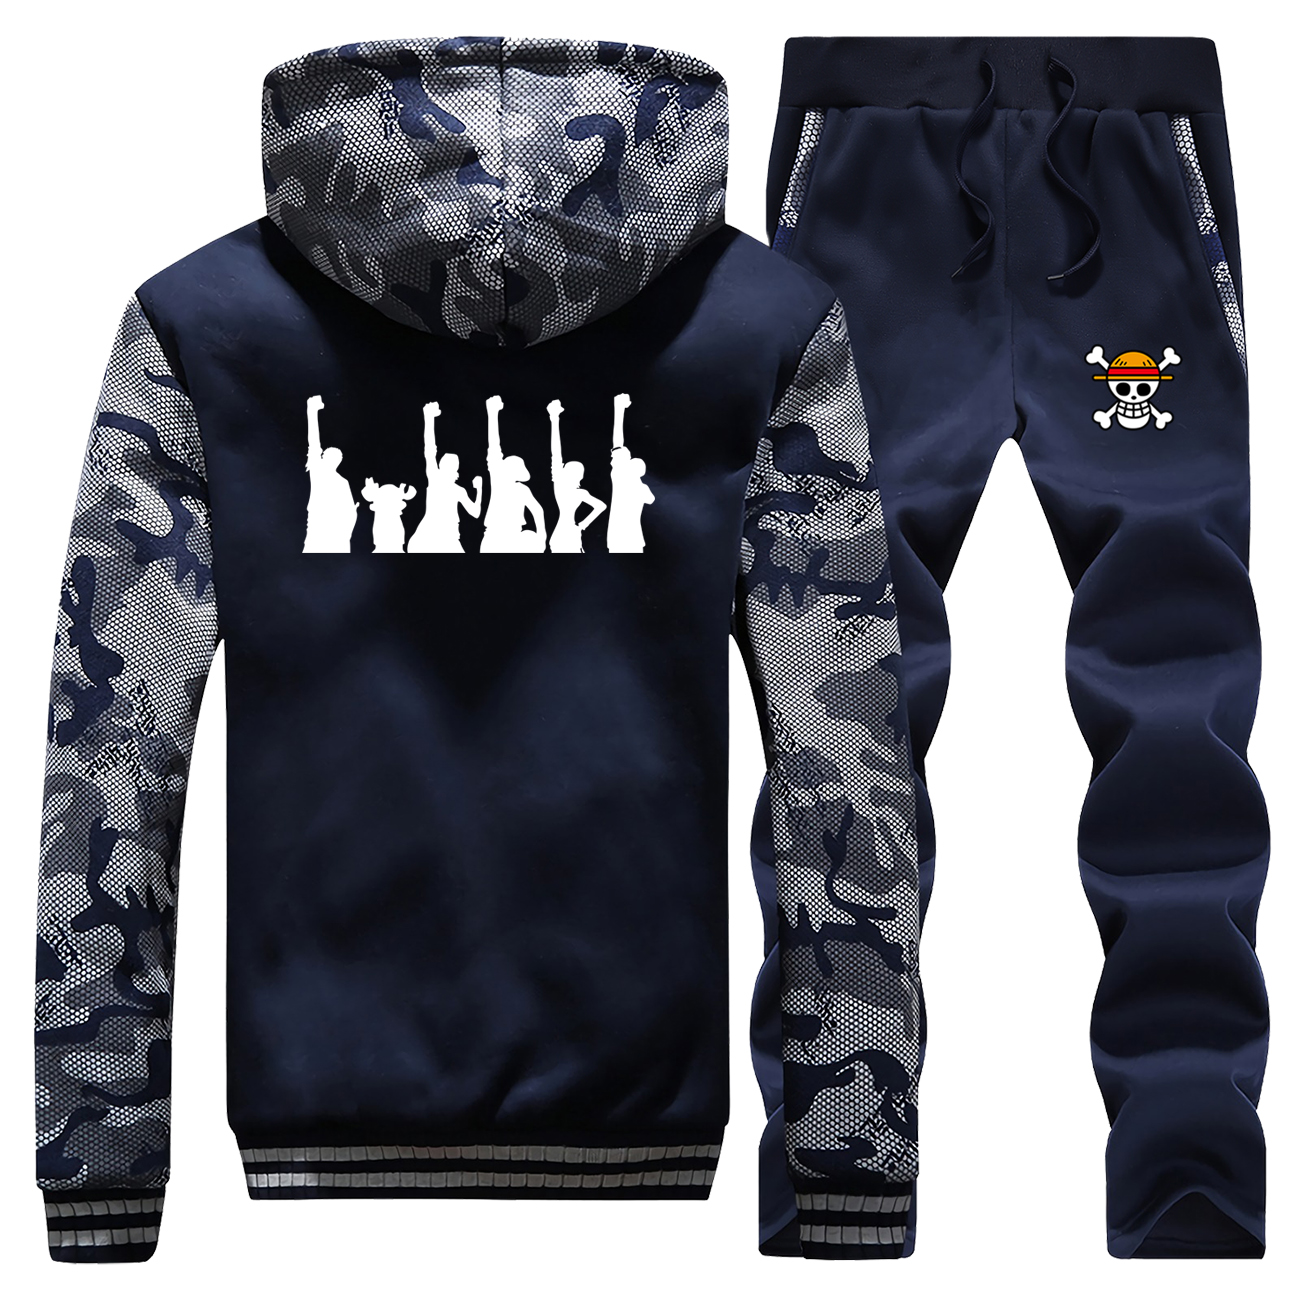 One Piece Japan Anime Hoodies Pant Set Men The Pirate King Luffy Tony Chopper Tracksuit Coat Winter Thick Jacket Camo 2 PCS Sets